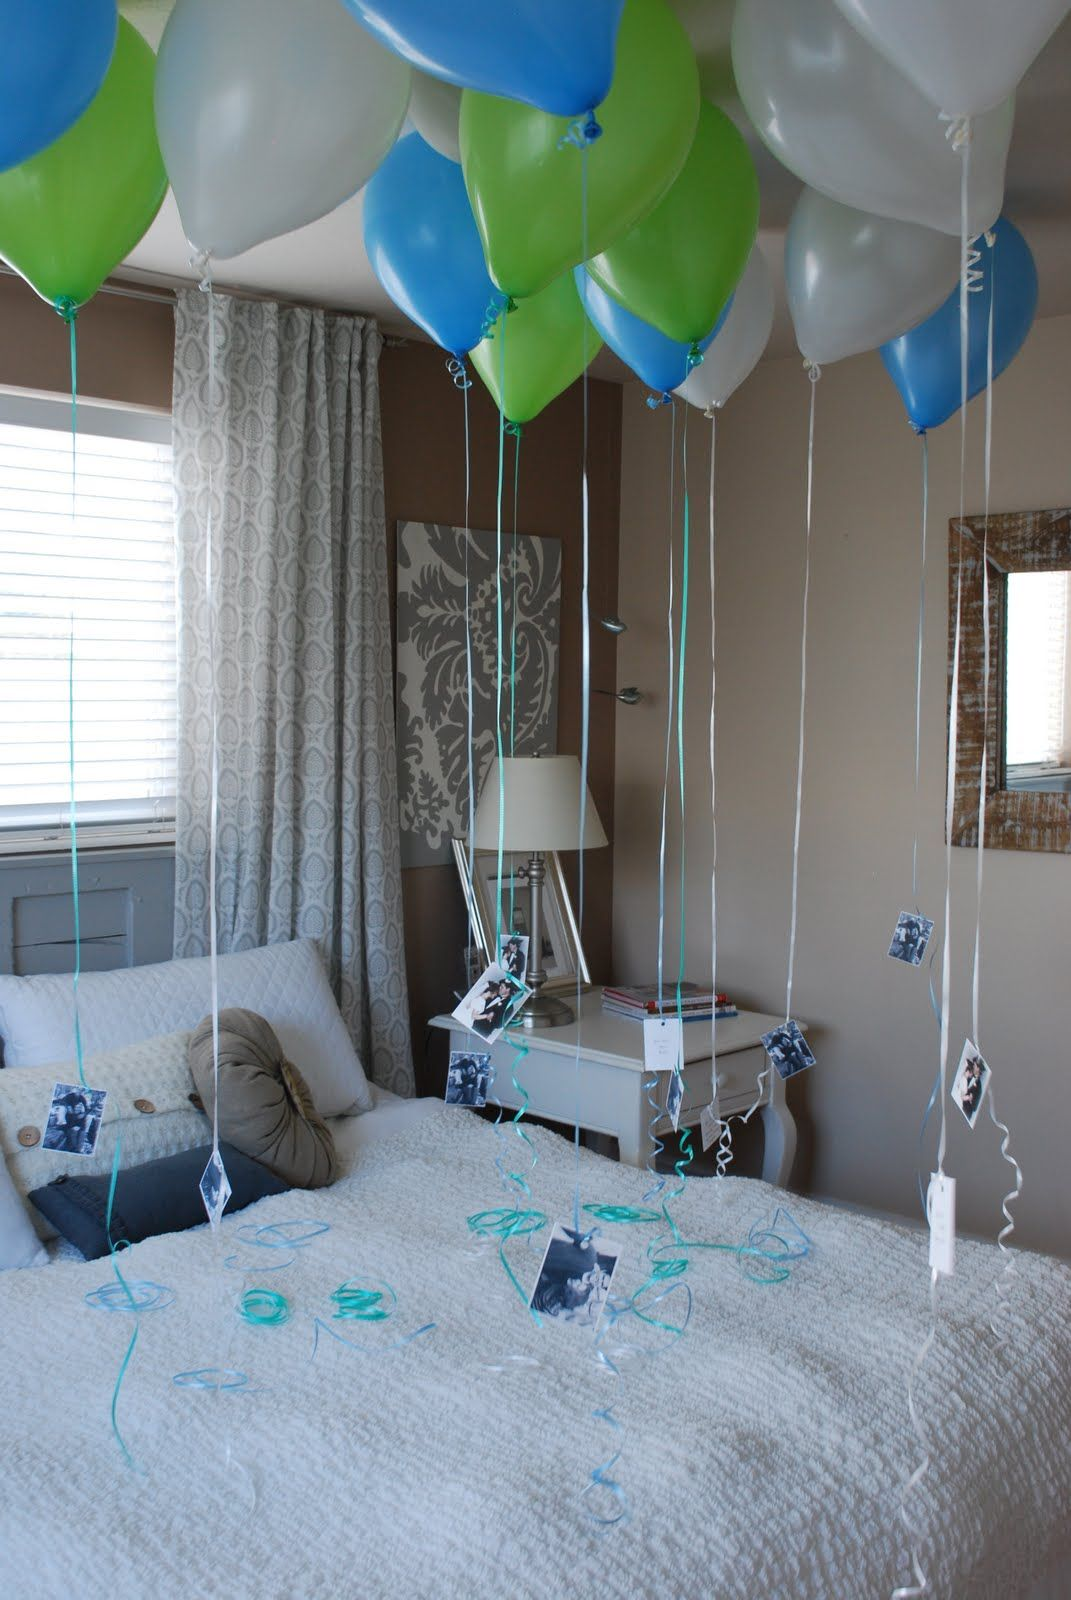 For anniversary, attach a note to each balloon-one for every year you've been married.  Also could do this for birthdays.